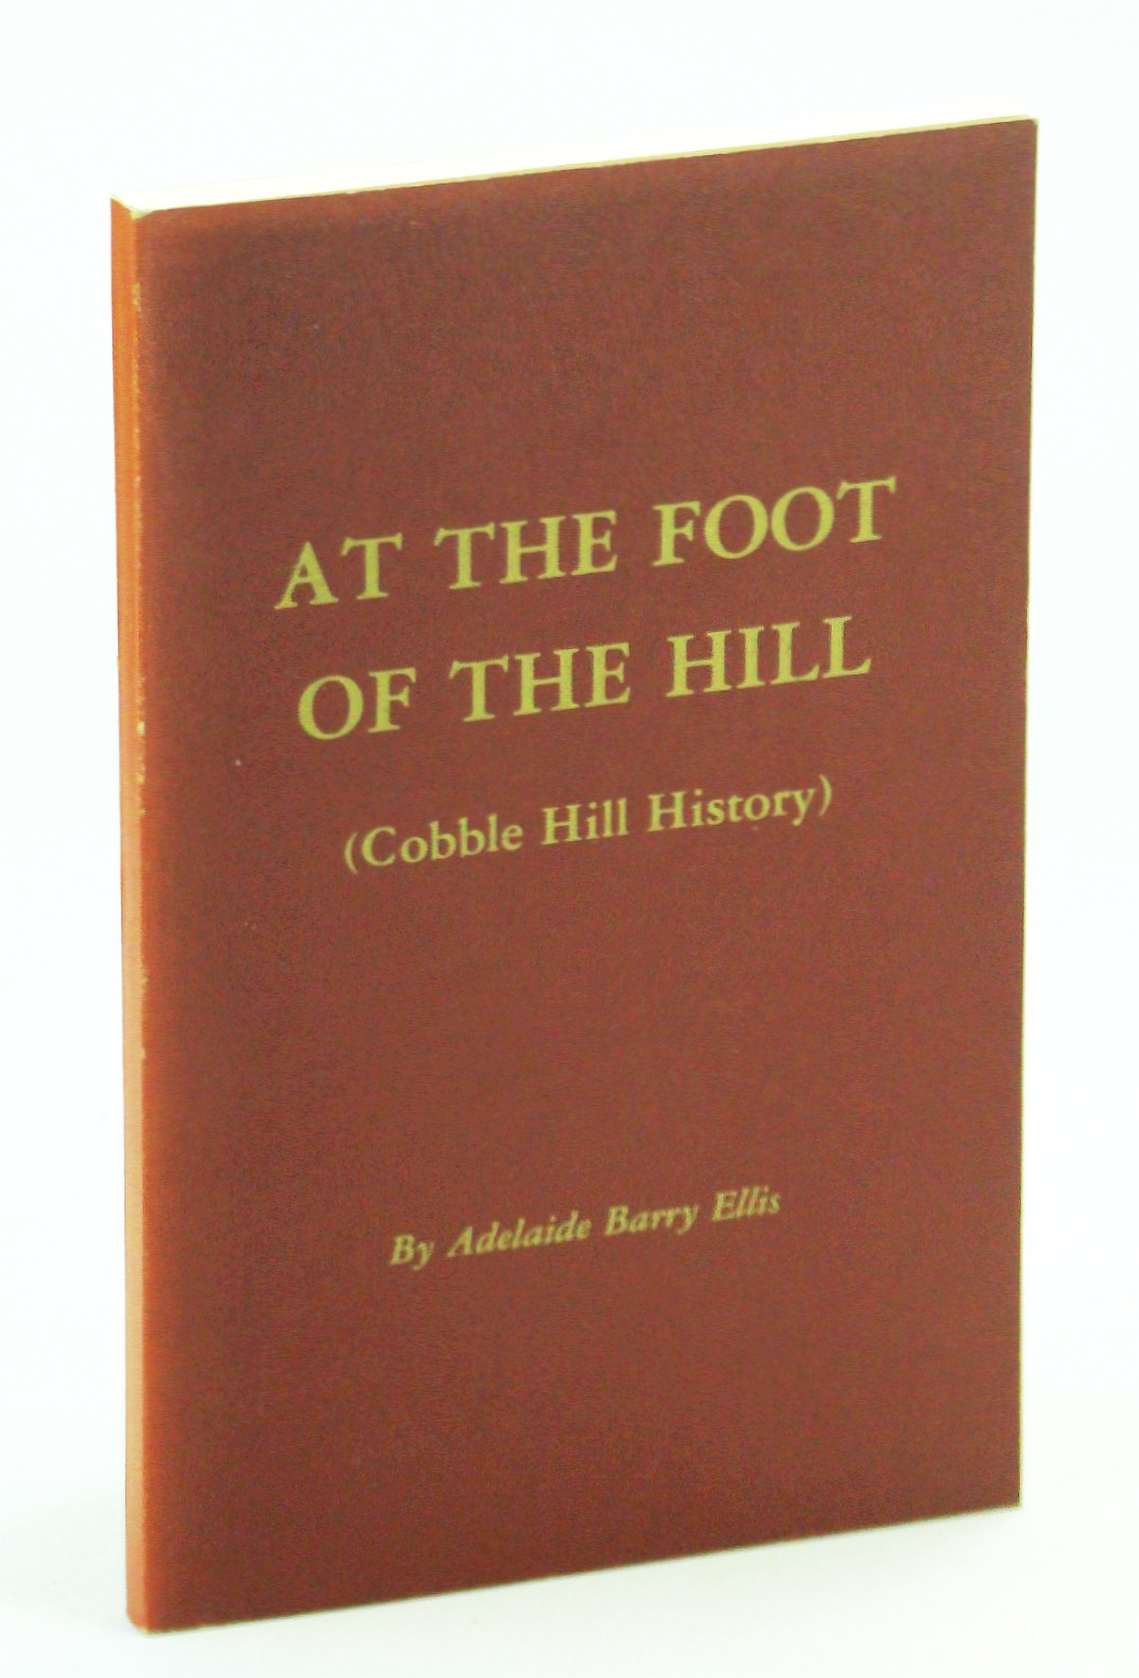 Image for At The Foot of the Hill (Cobble Hill History)